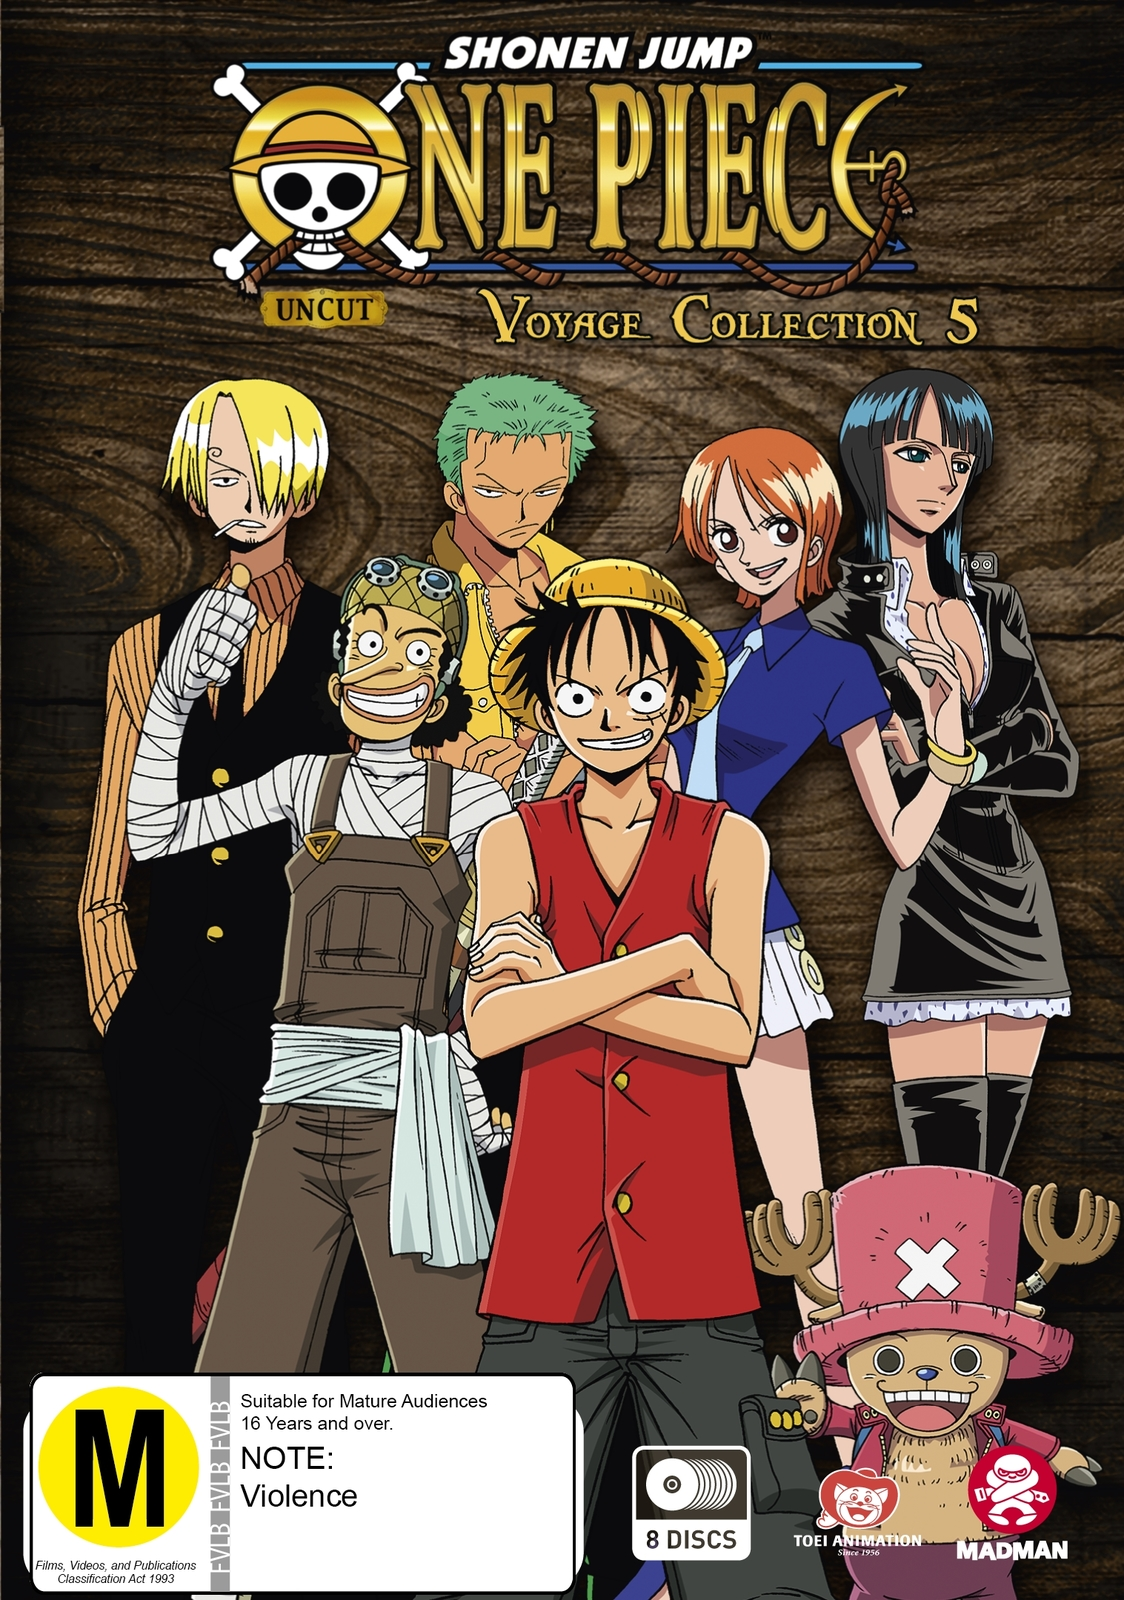 One Piece: Voyage - Collection 5 image